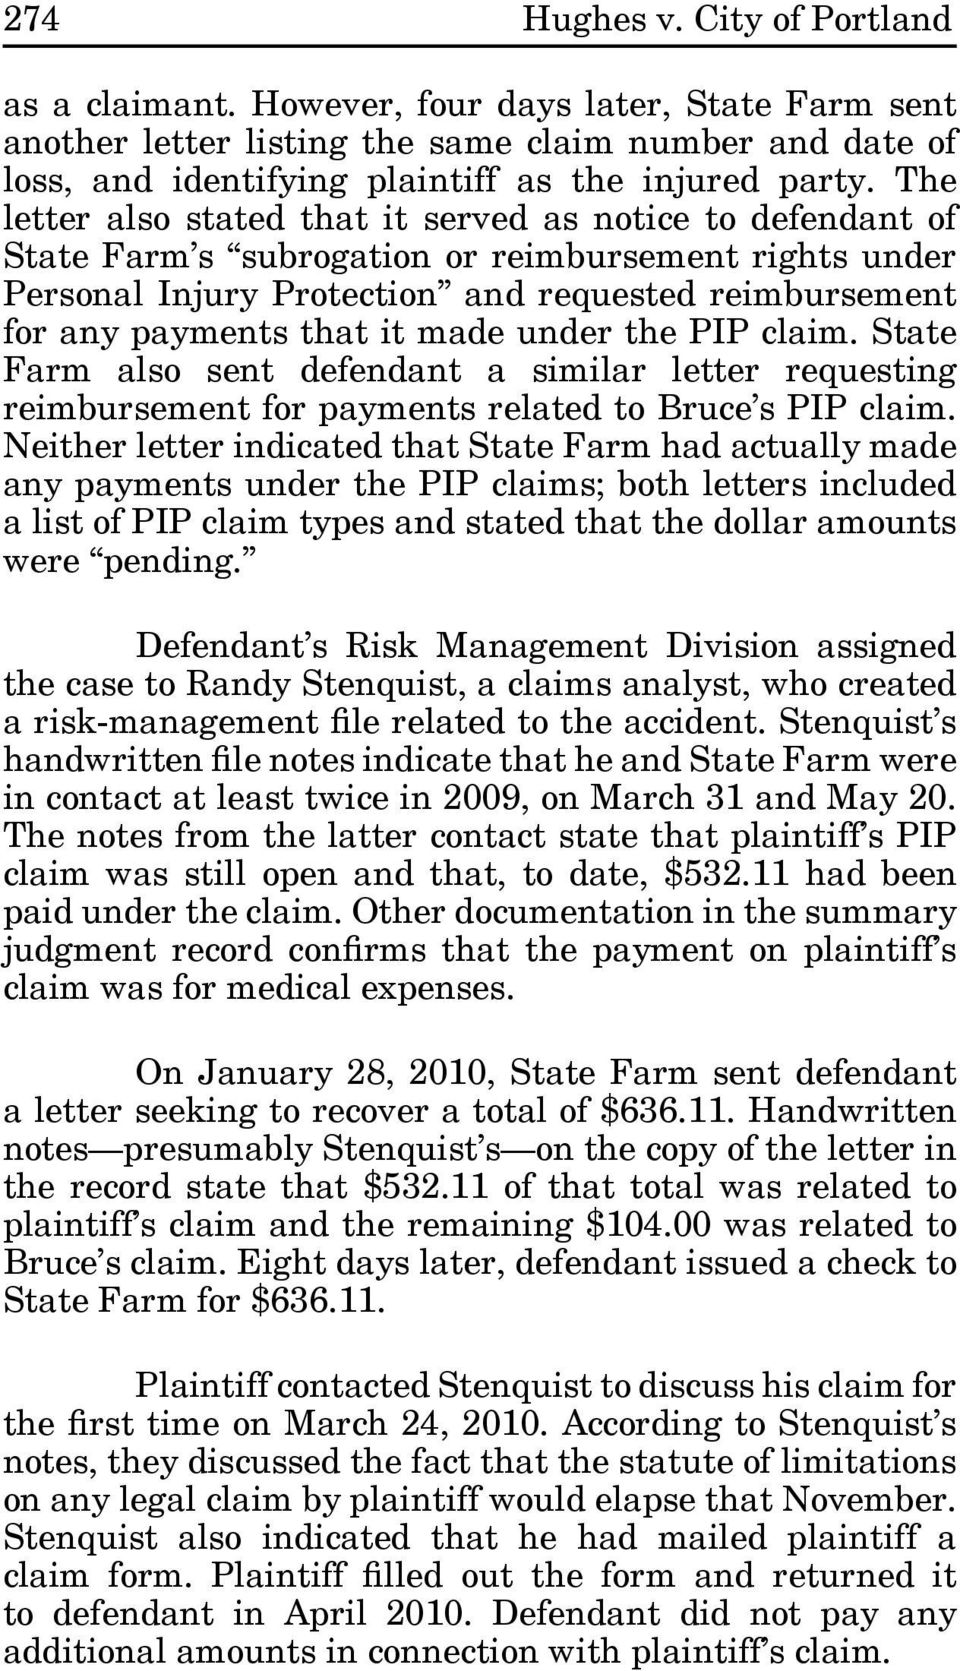 made under the PIP claim. State Farm also sent defendant a similar letter requesting reimbursement for payments related to Bruce s PIP claim.